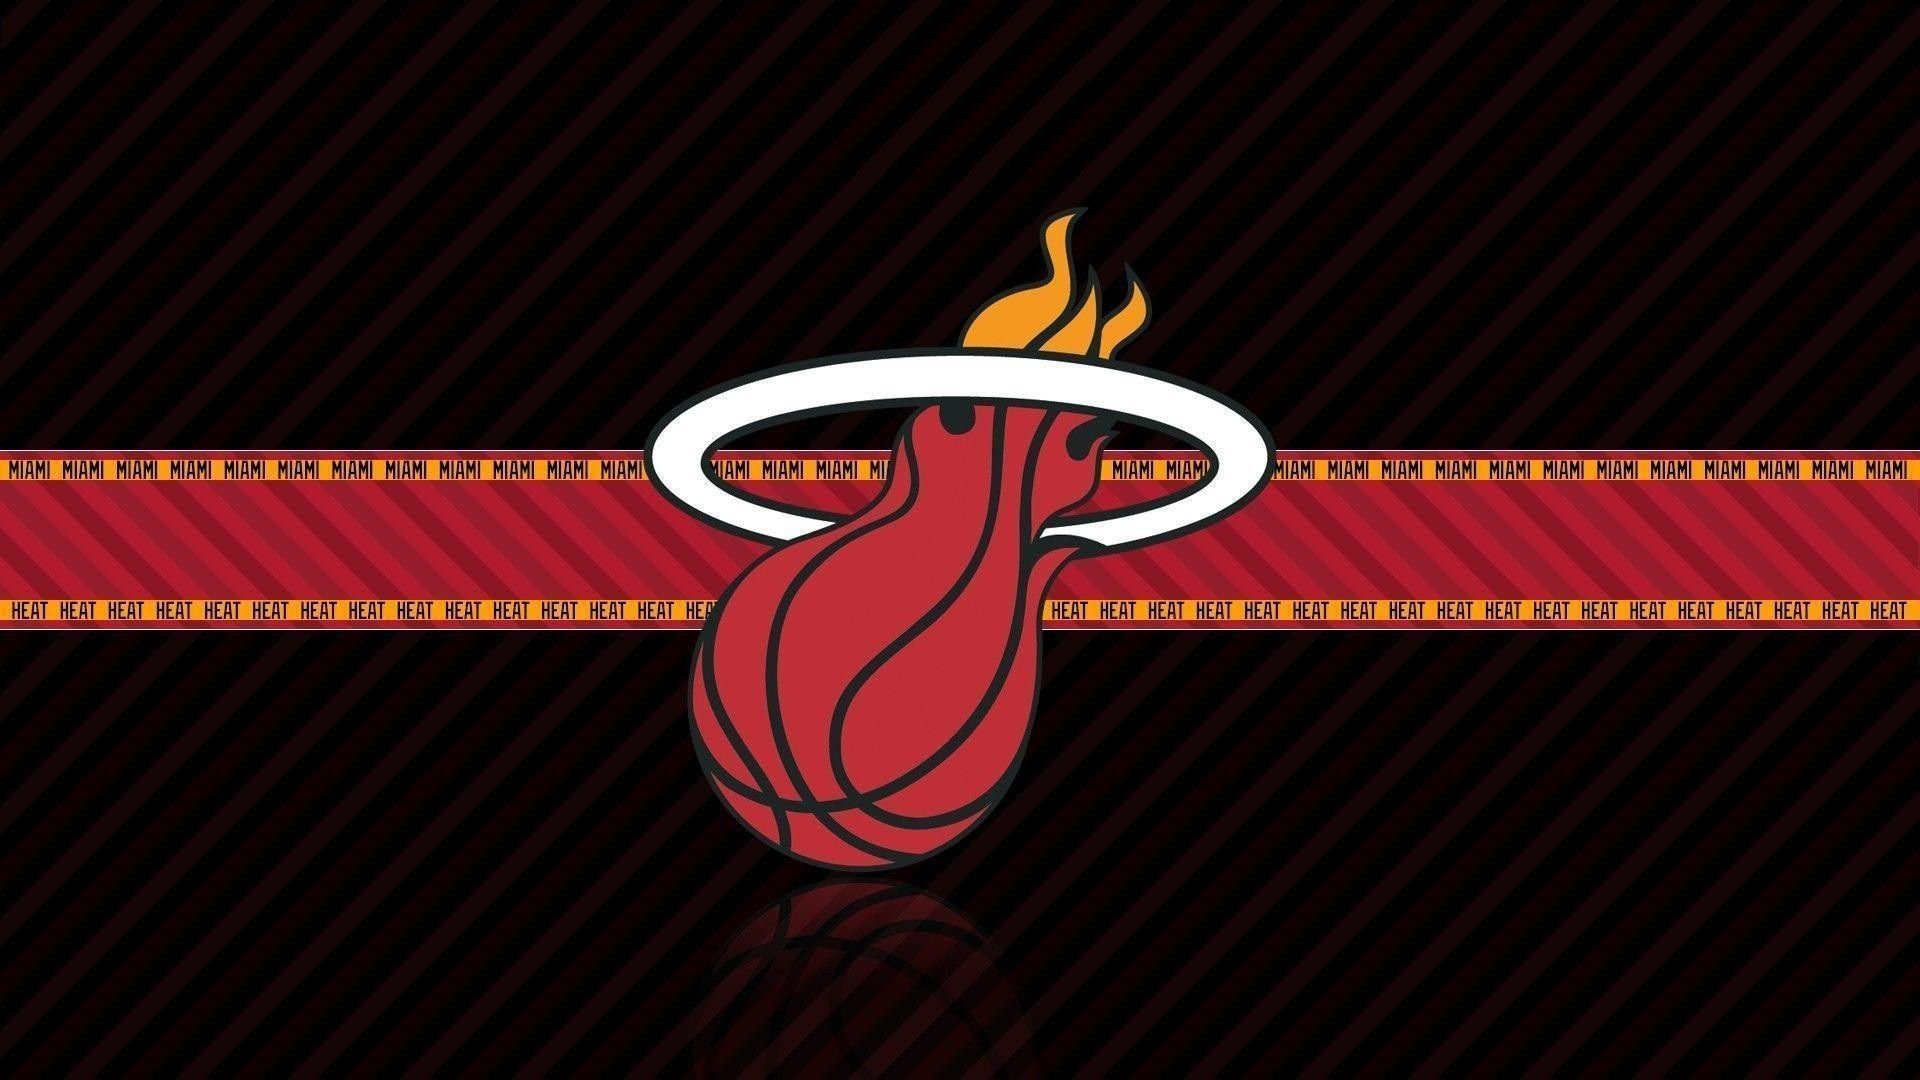 Miami Heat Wallpaper – Why It's The Perfect Background for Your Computer